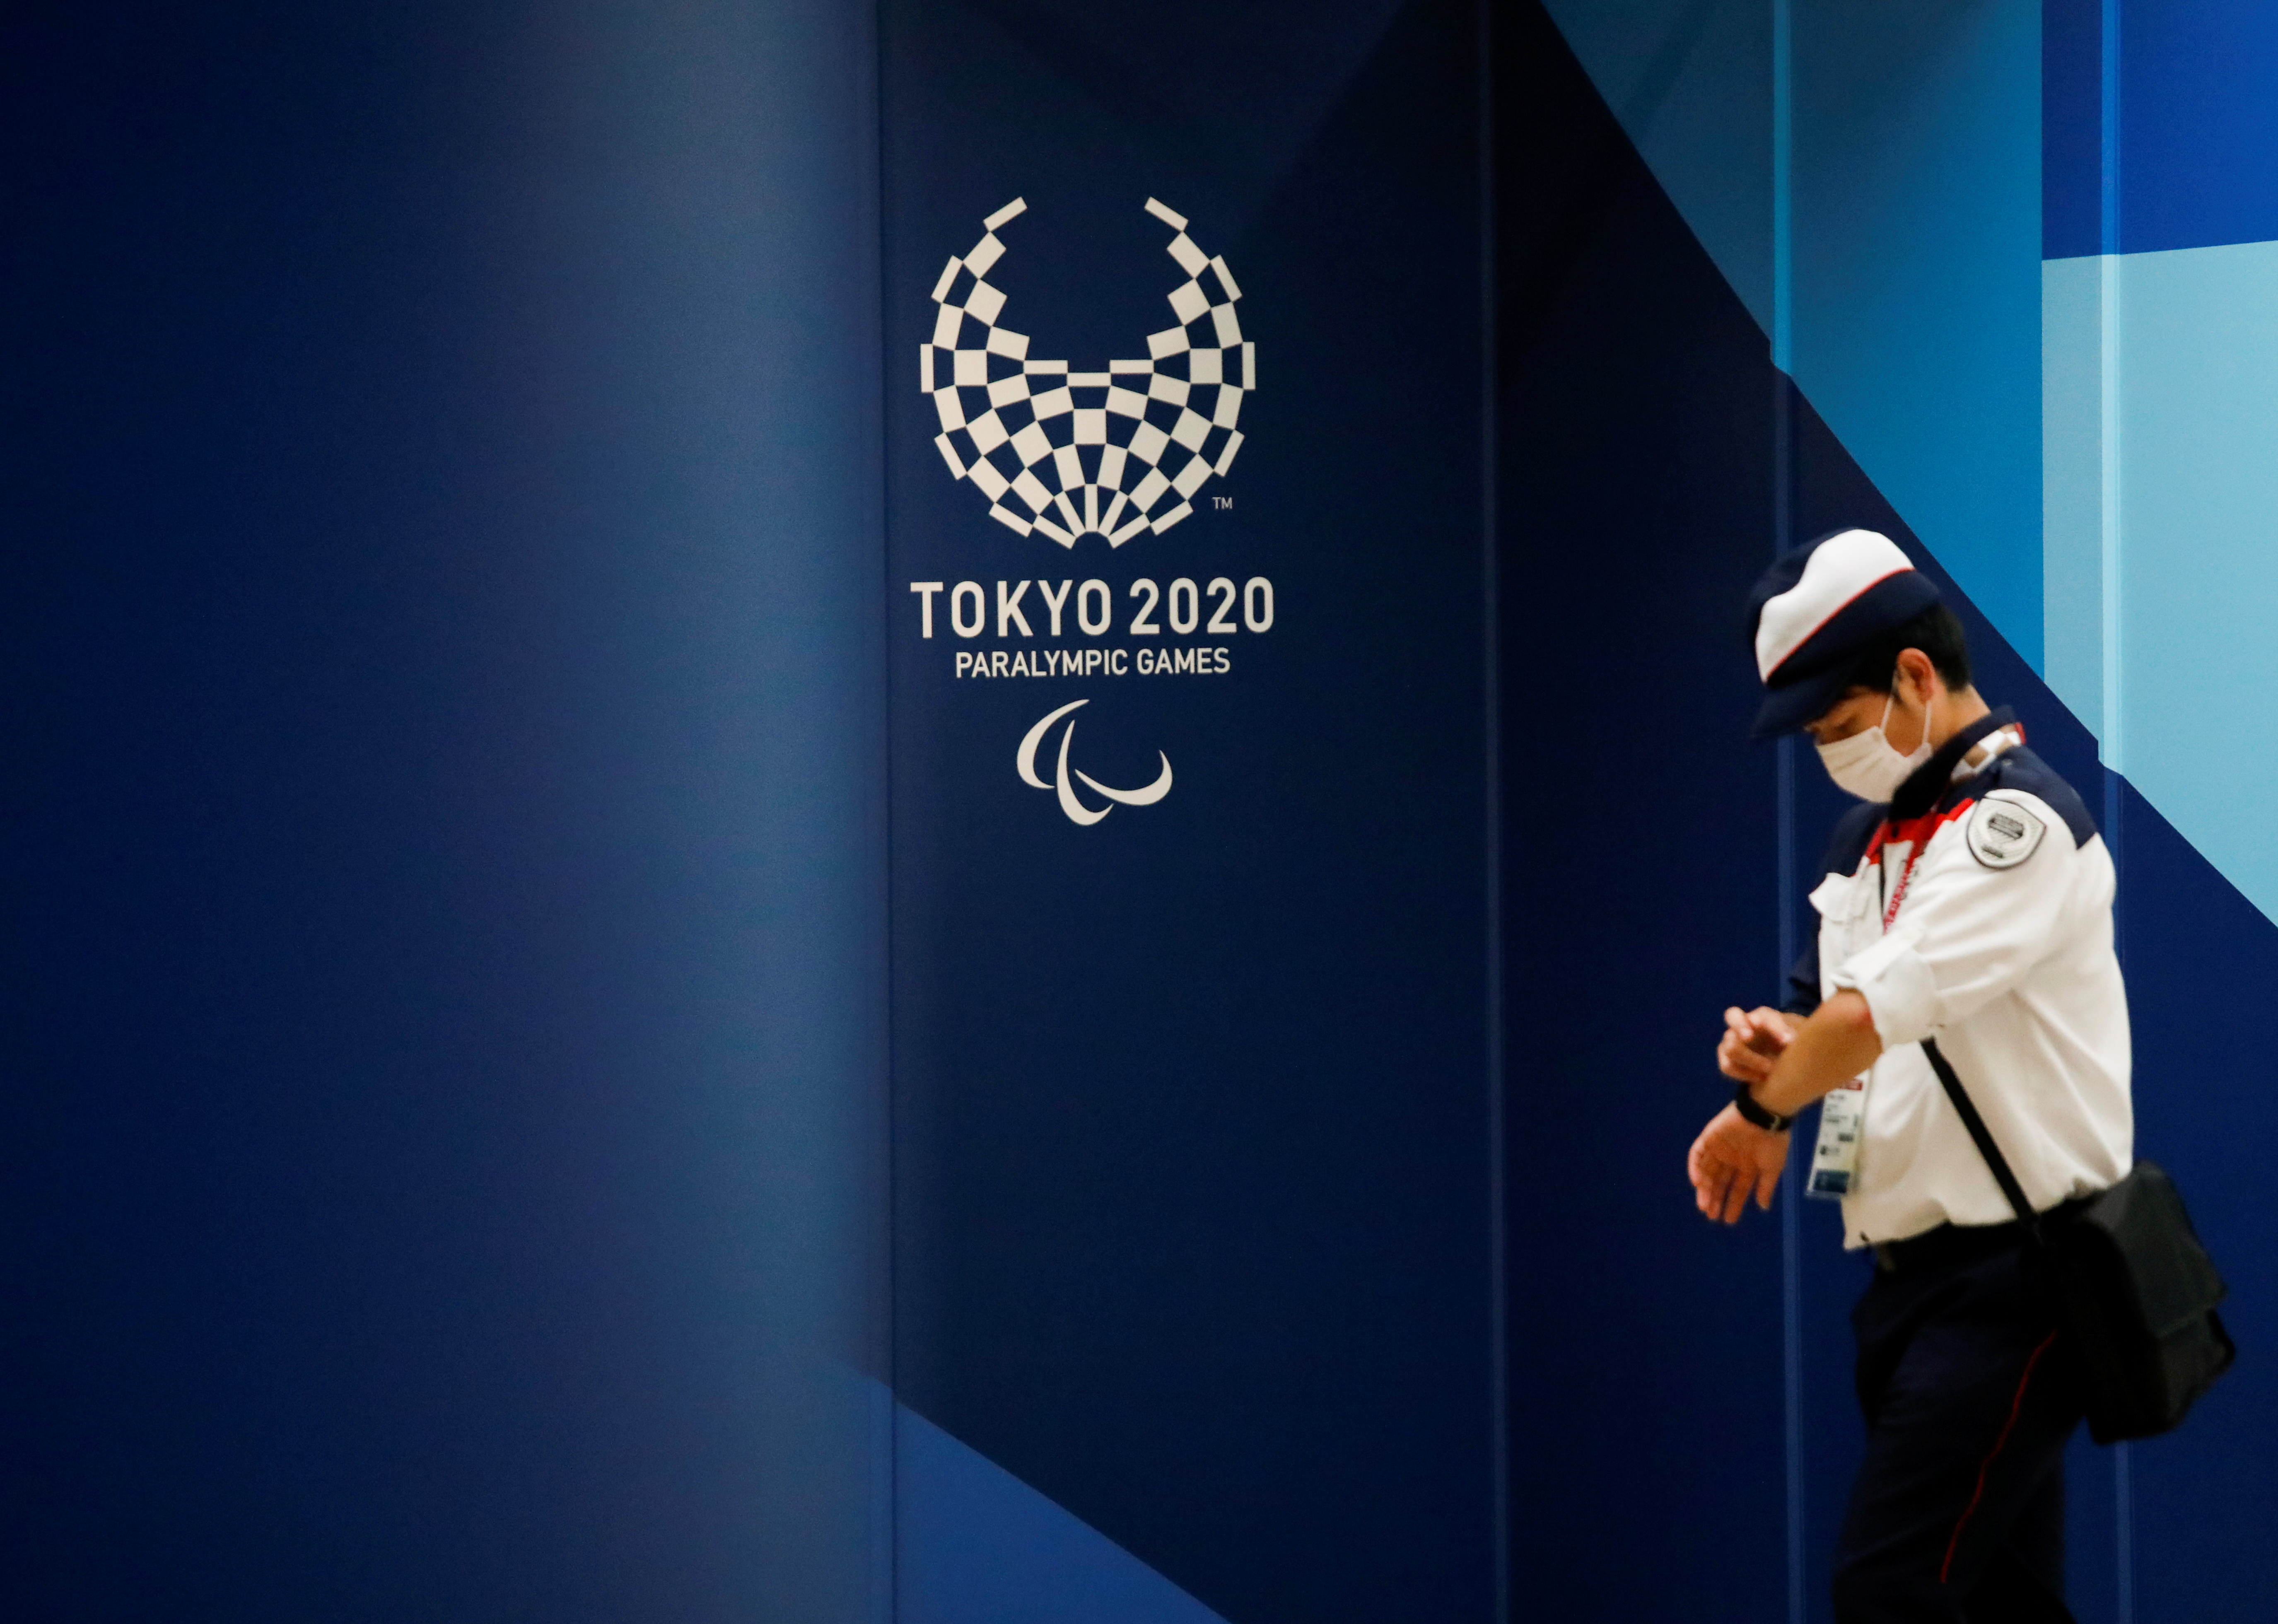 The logo of Tokyo 2020 Paralympic Games is displayed amid the coronavirus disease (COVID-19) pandemic, in Tokyo, Japan, August 16, 2021.  REUTERS/Issei Kato